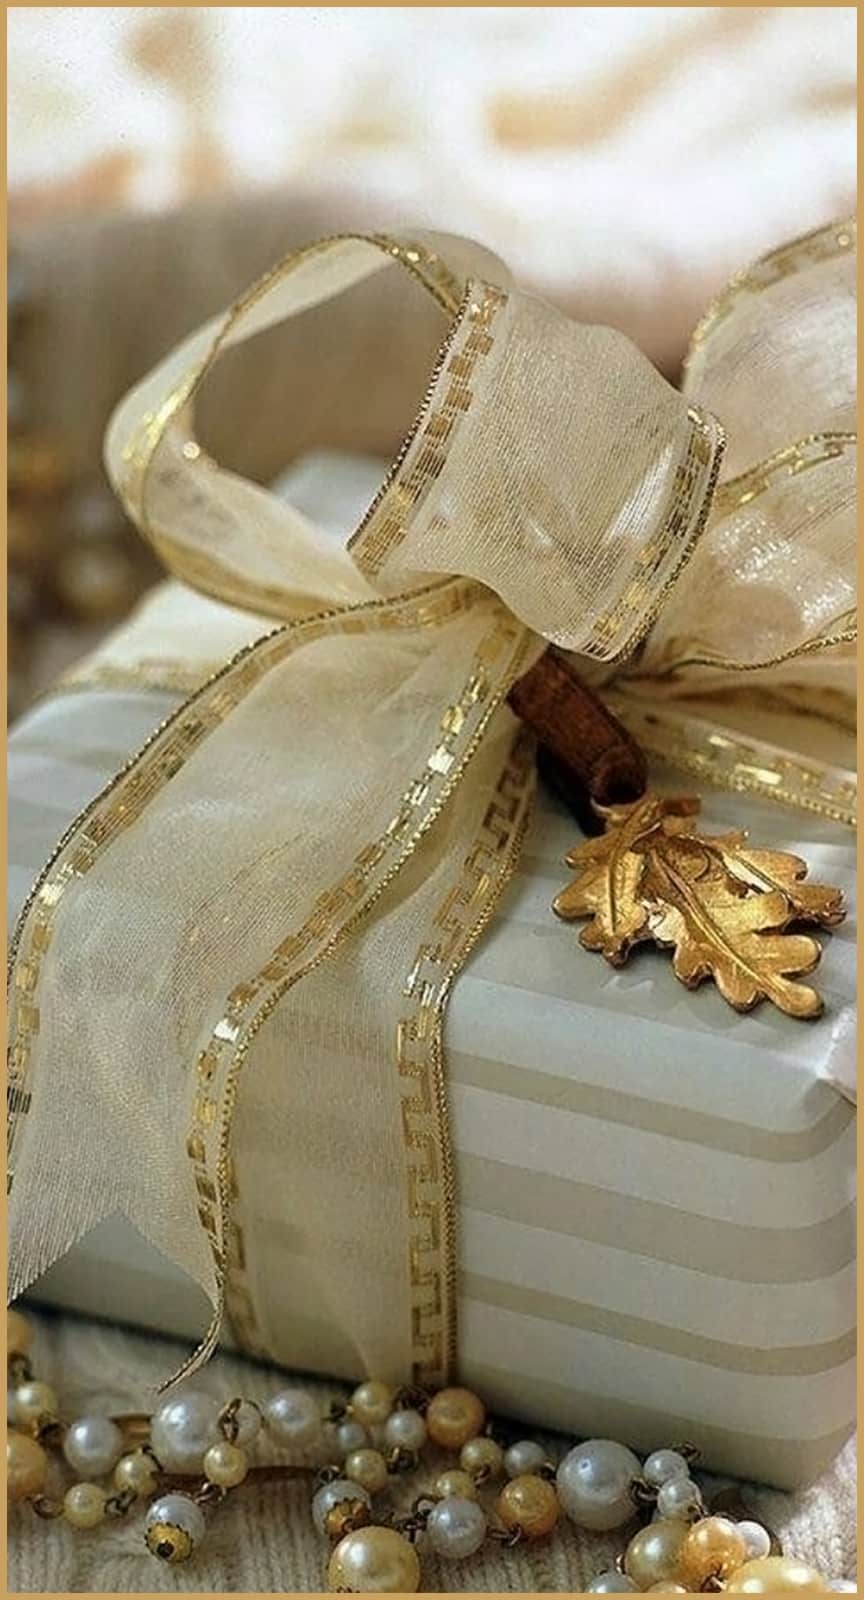 GIFT CARDS GIFT CARD gold